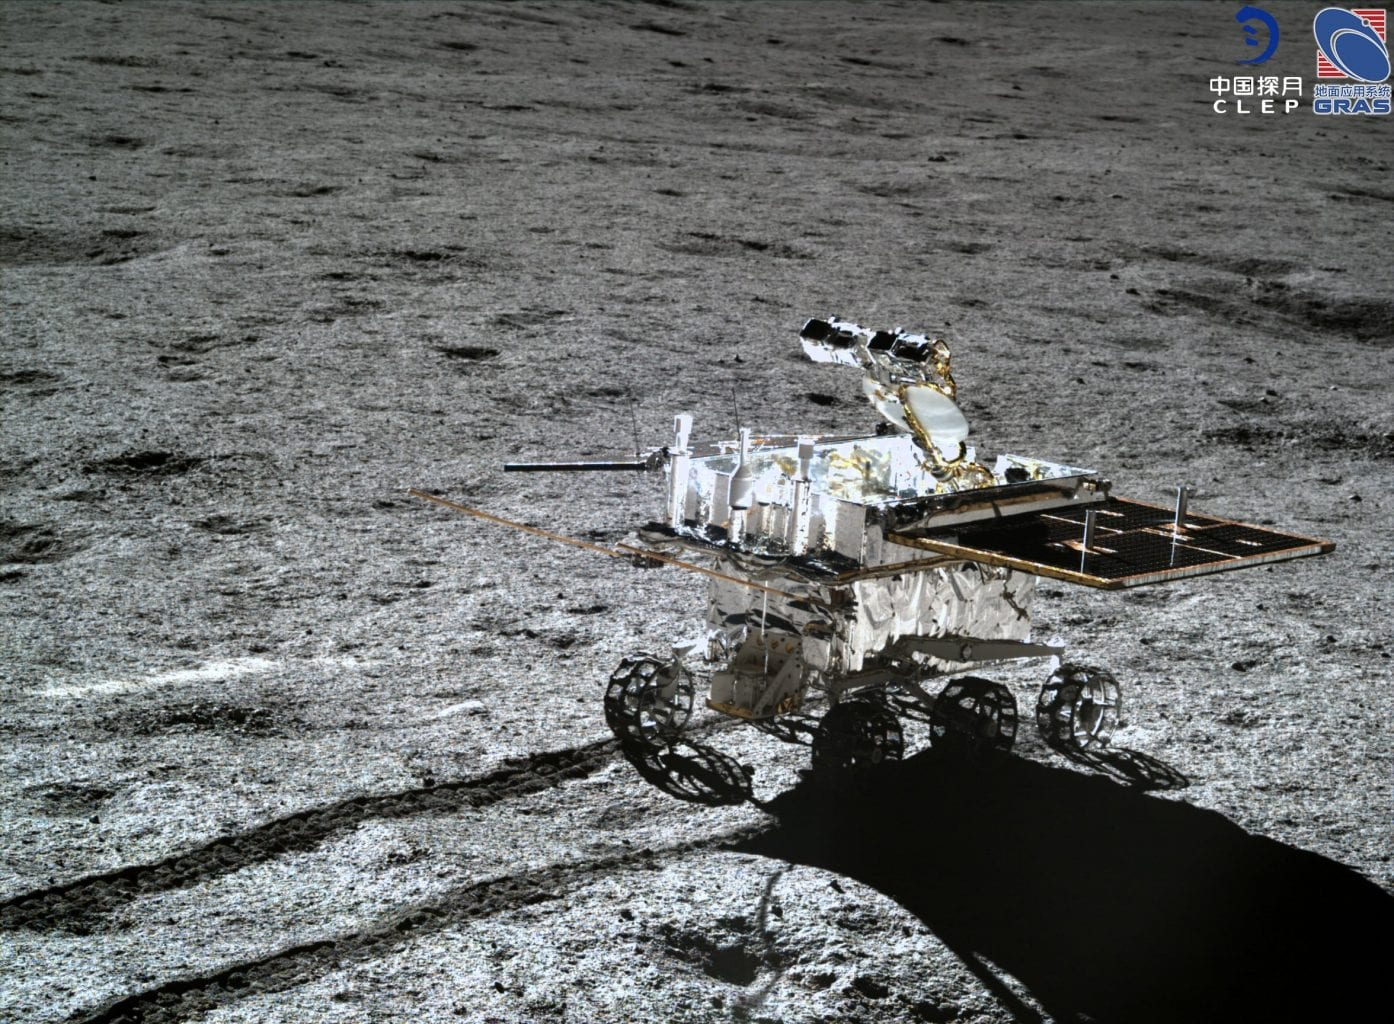 Image of the patrol unit on its way to point D. Credit: CLEP/ Lunar and Planetary Multimedia Database